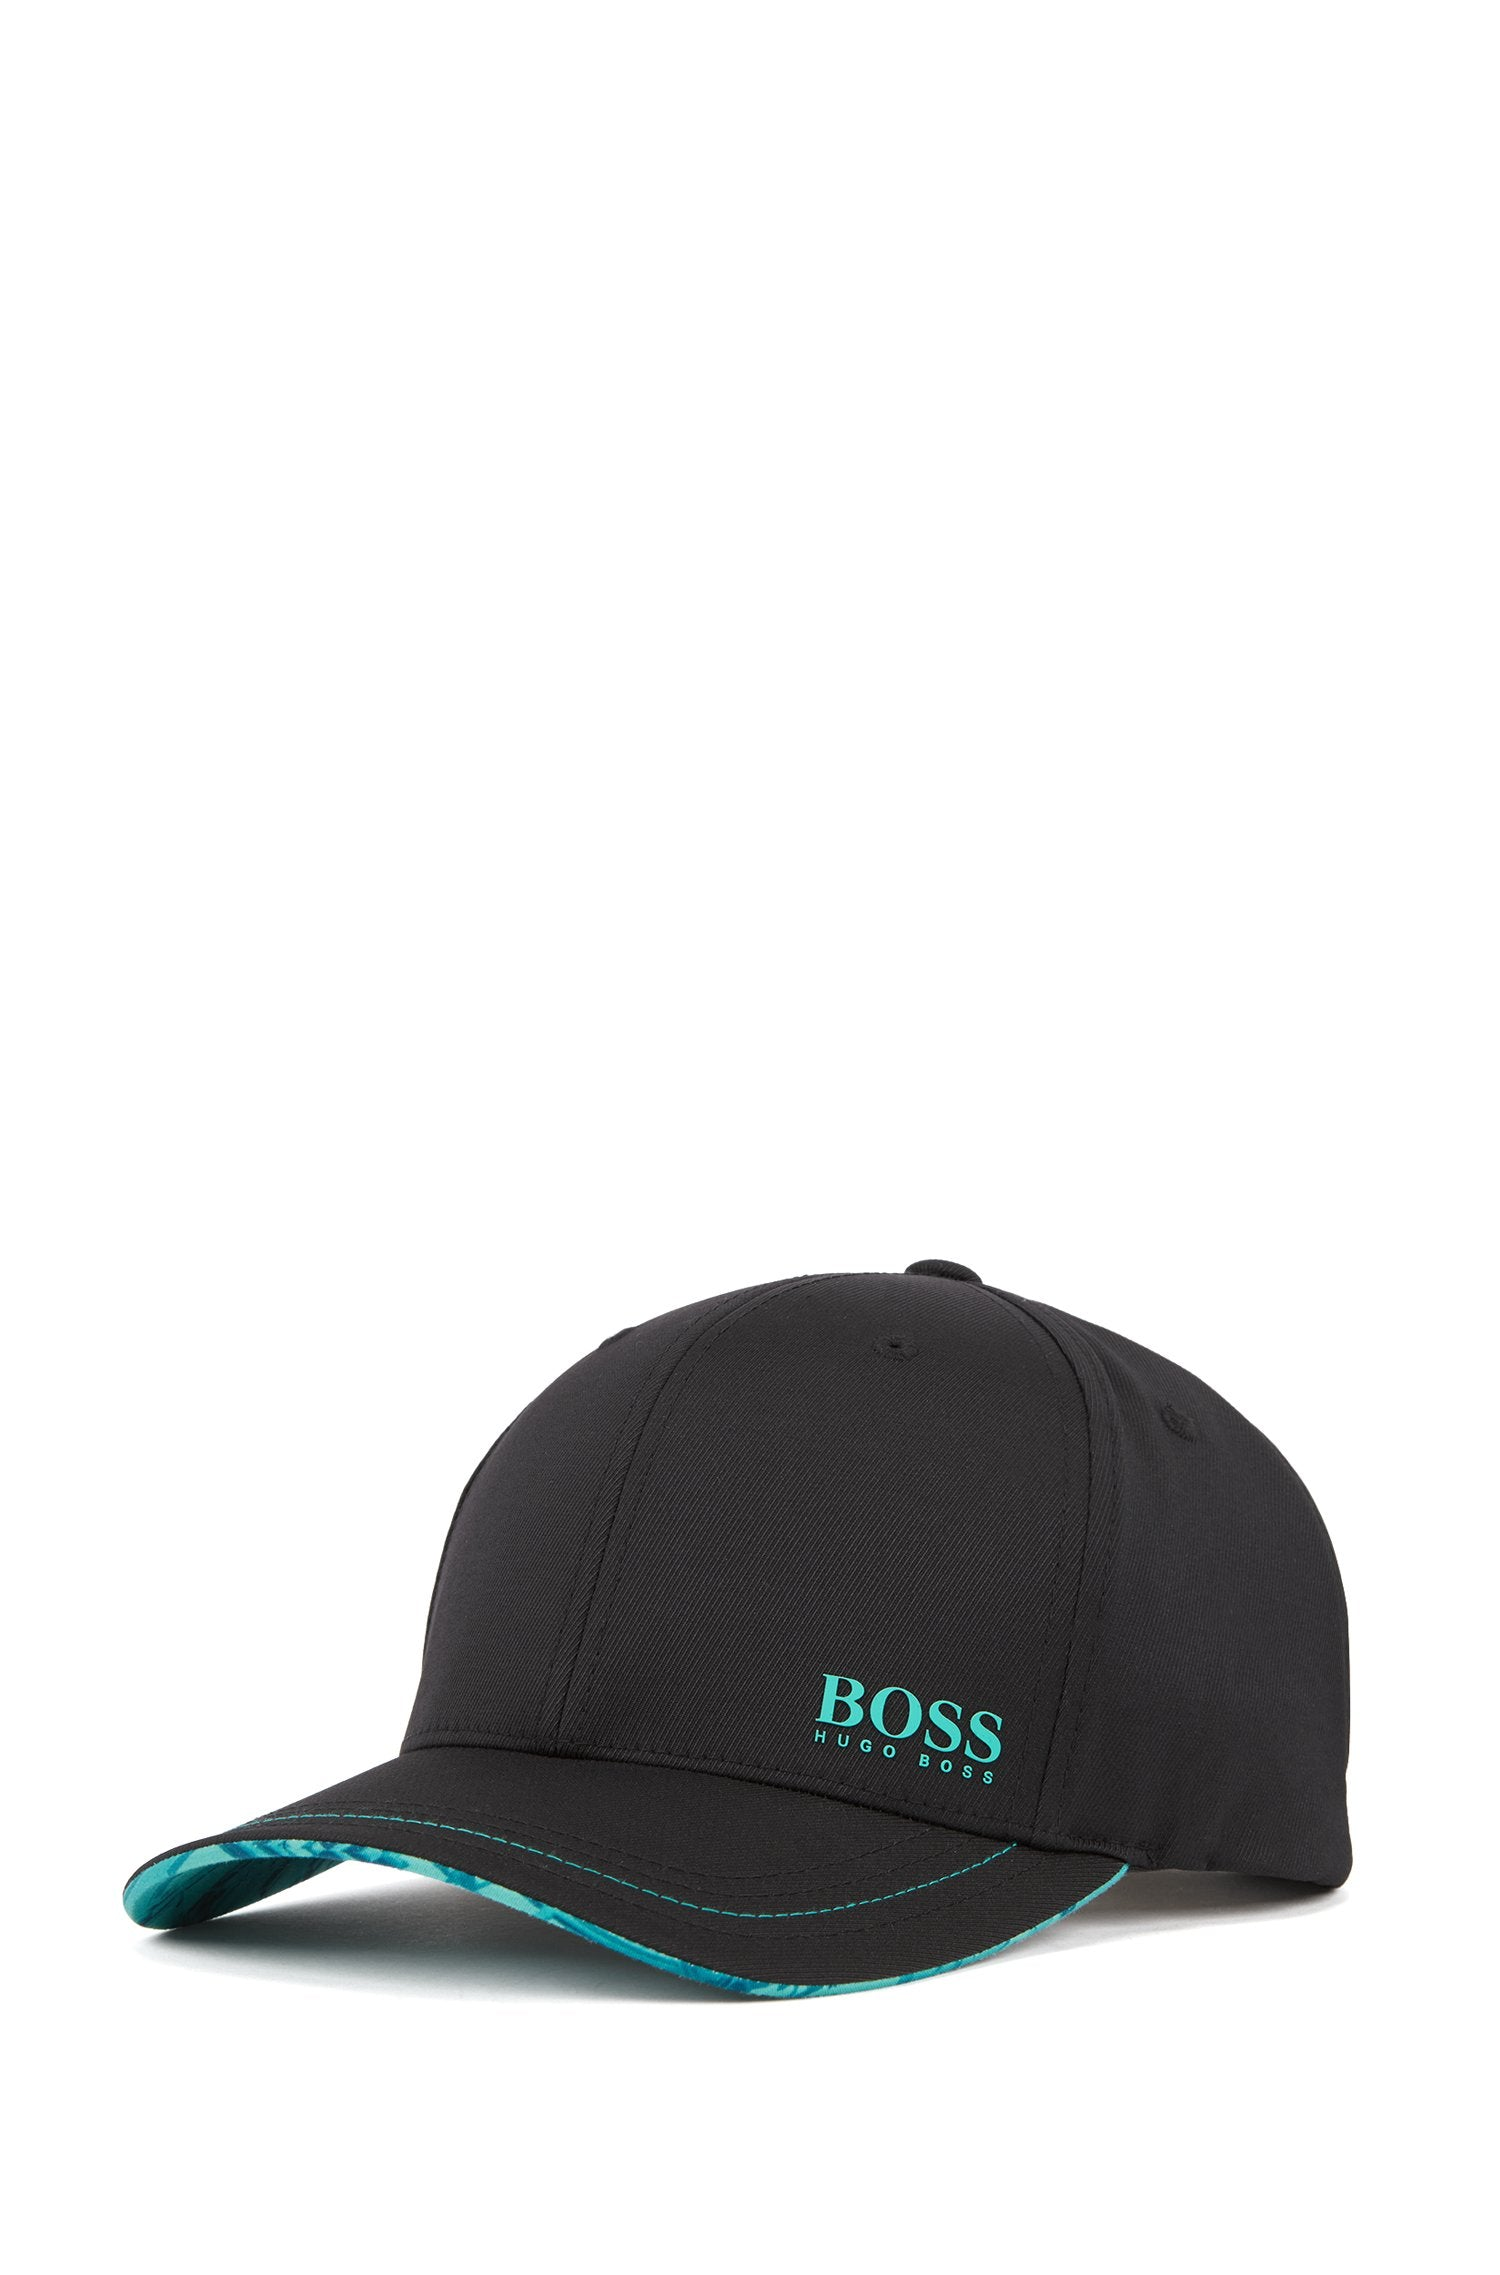 HUGO BOSS Lightweight cap in stretch twill with collection pattern 50410365-001